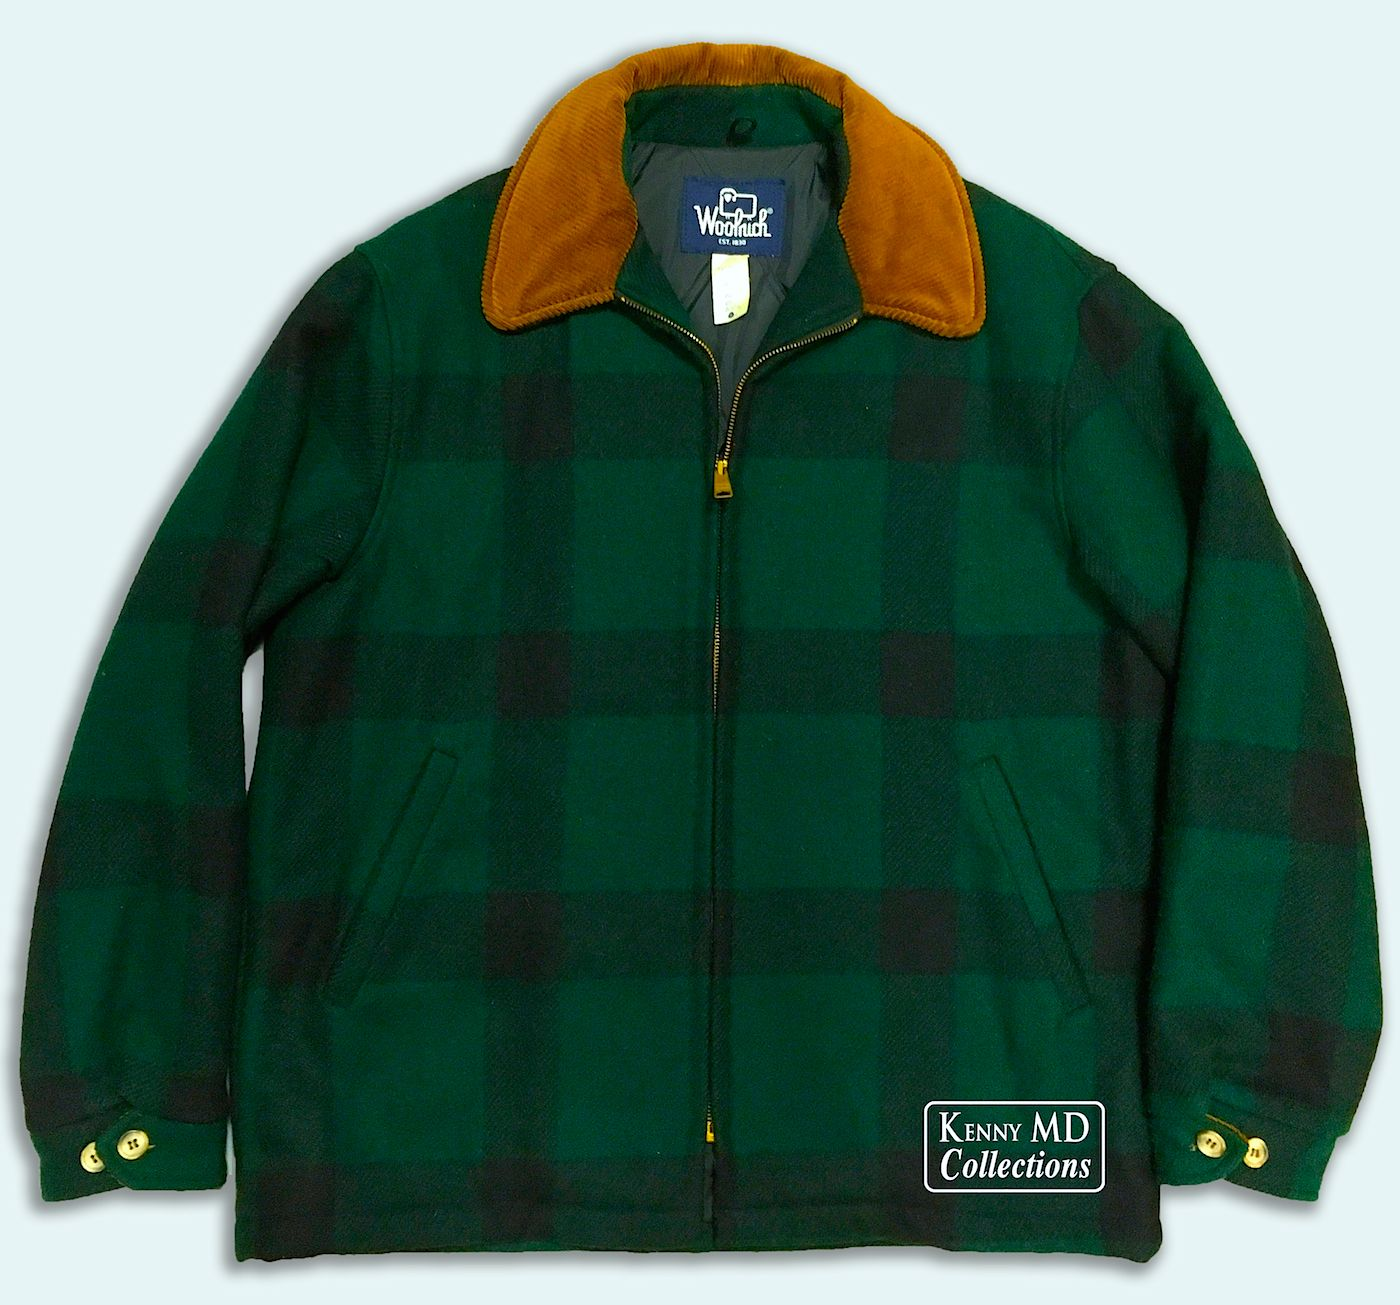 80's Model Woolrich Green Plaid Jacket